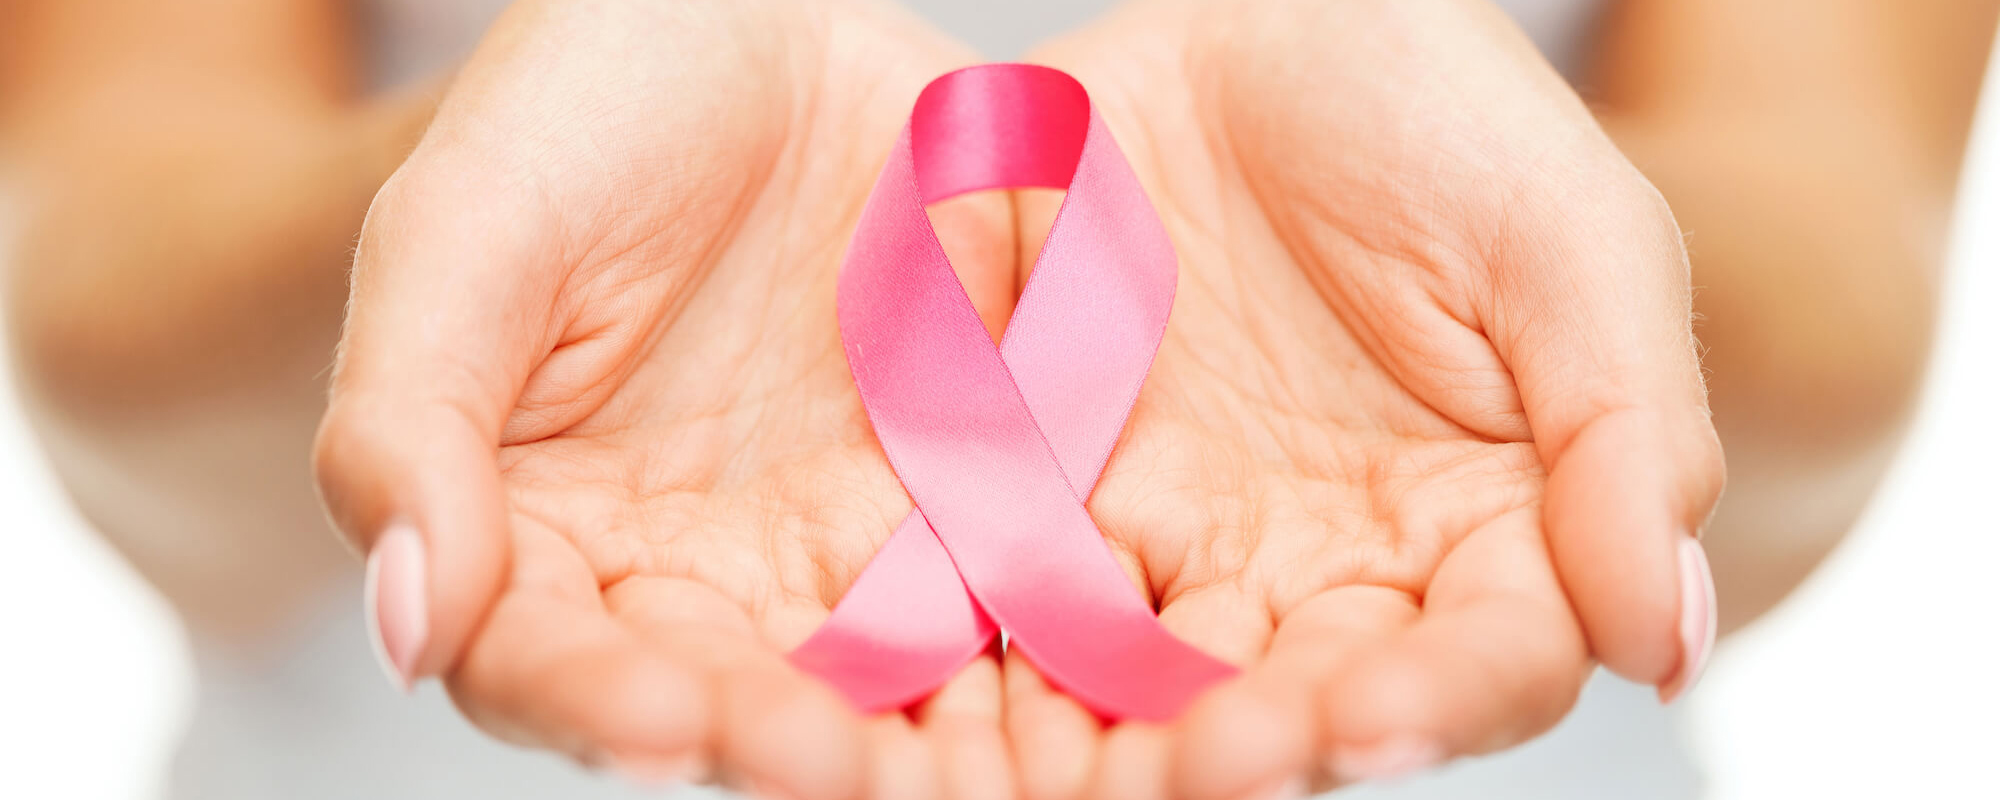 Study finds Europe does not offer necessary support for breast cancer survivors